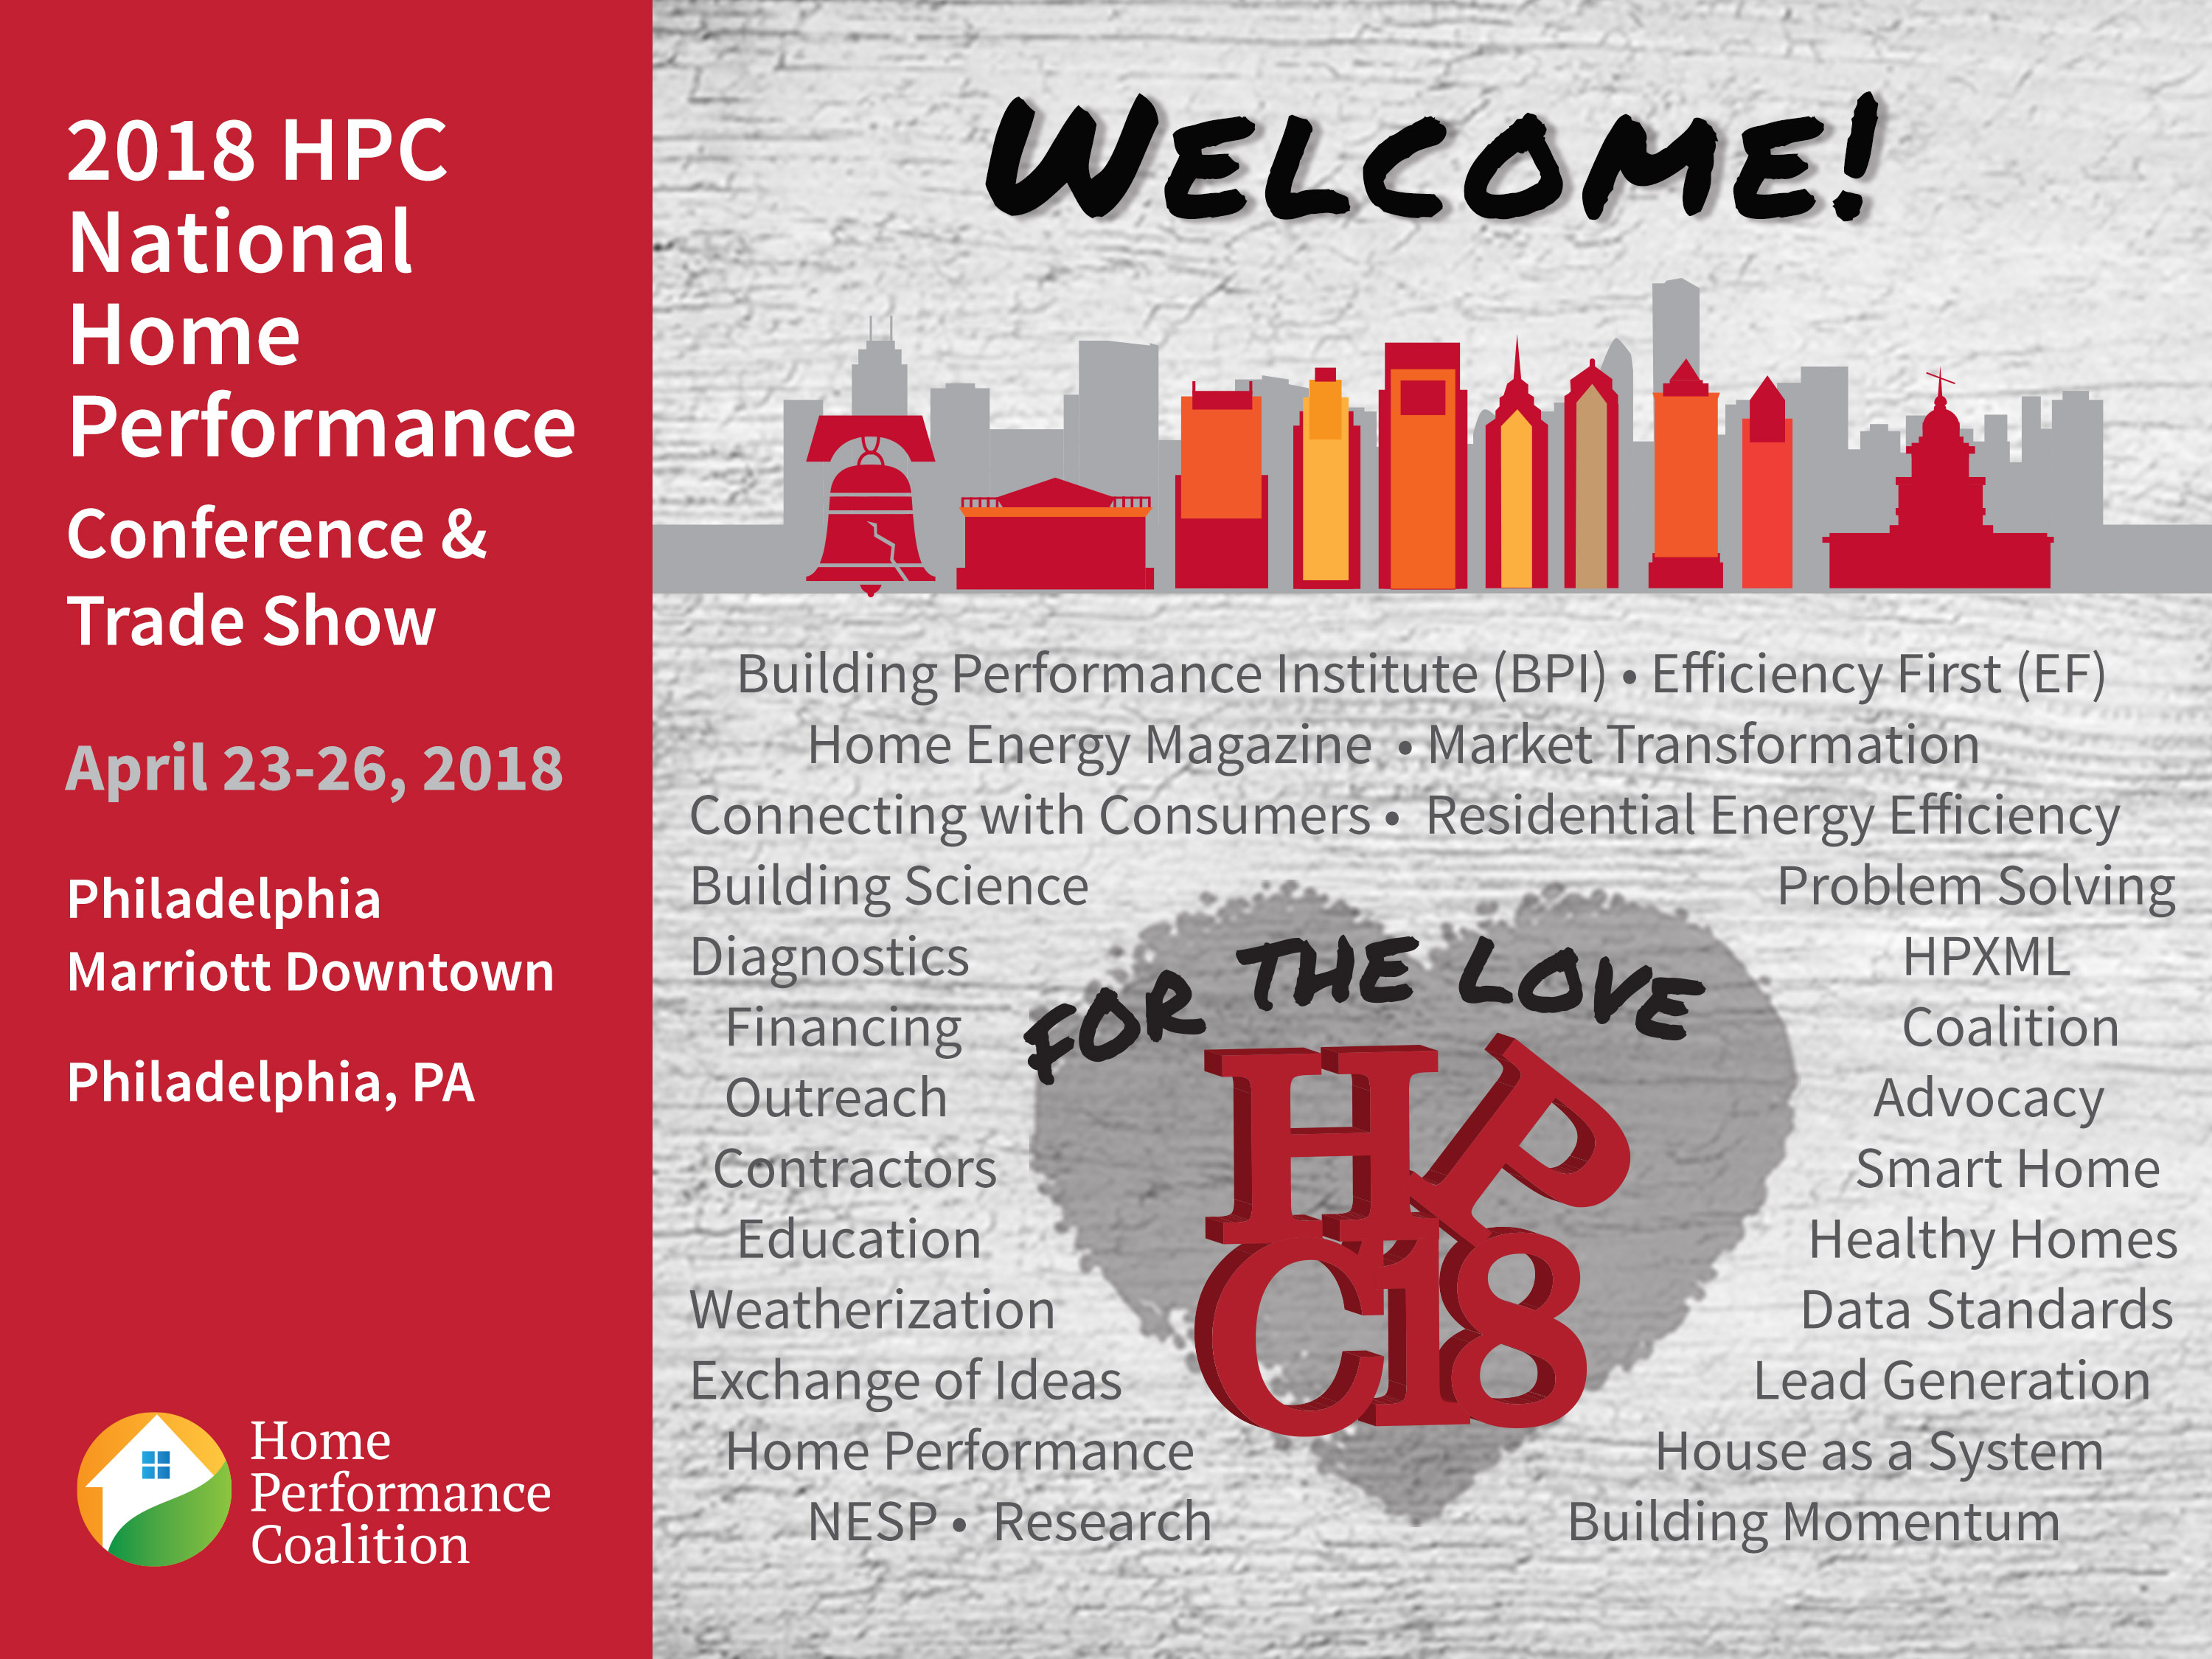 Natl18_Welcome_Powerpoint.jpg | Home Performance Coalition